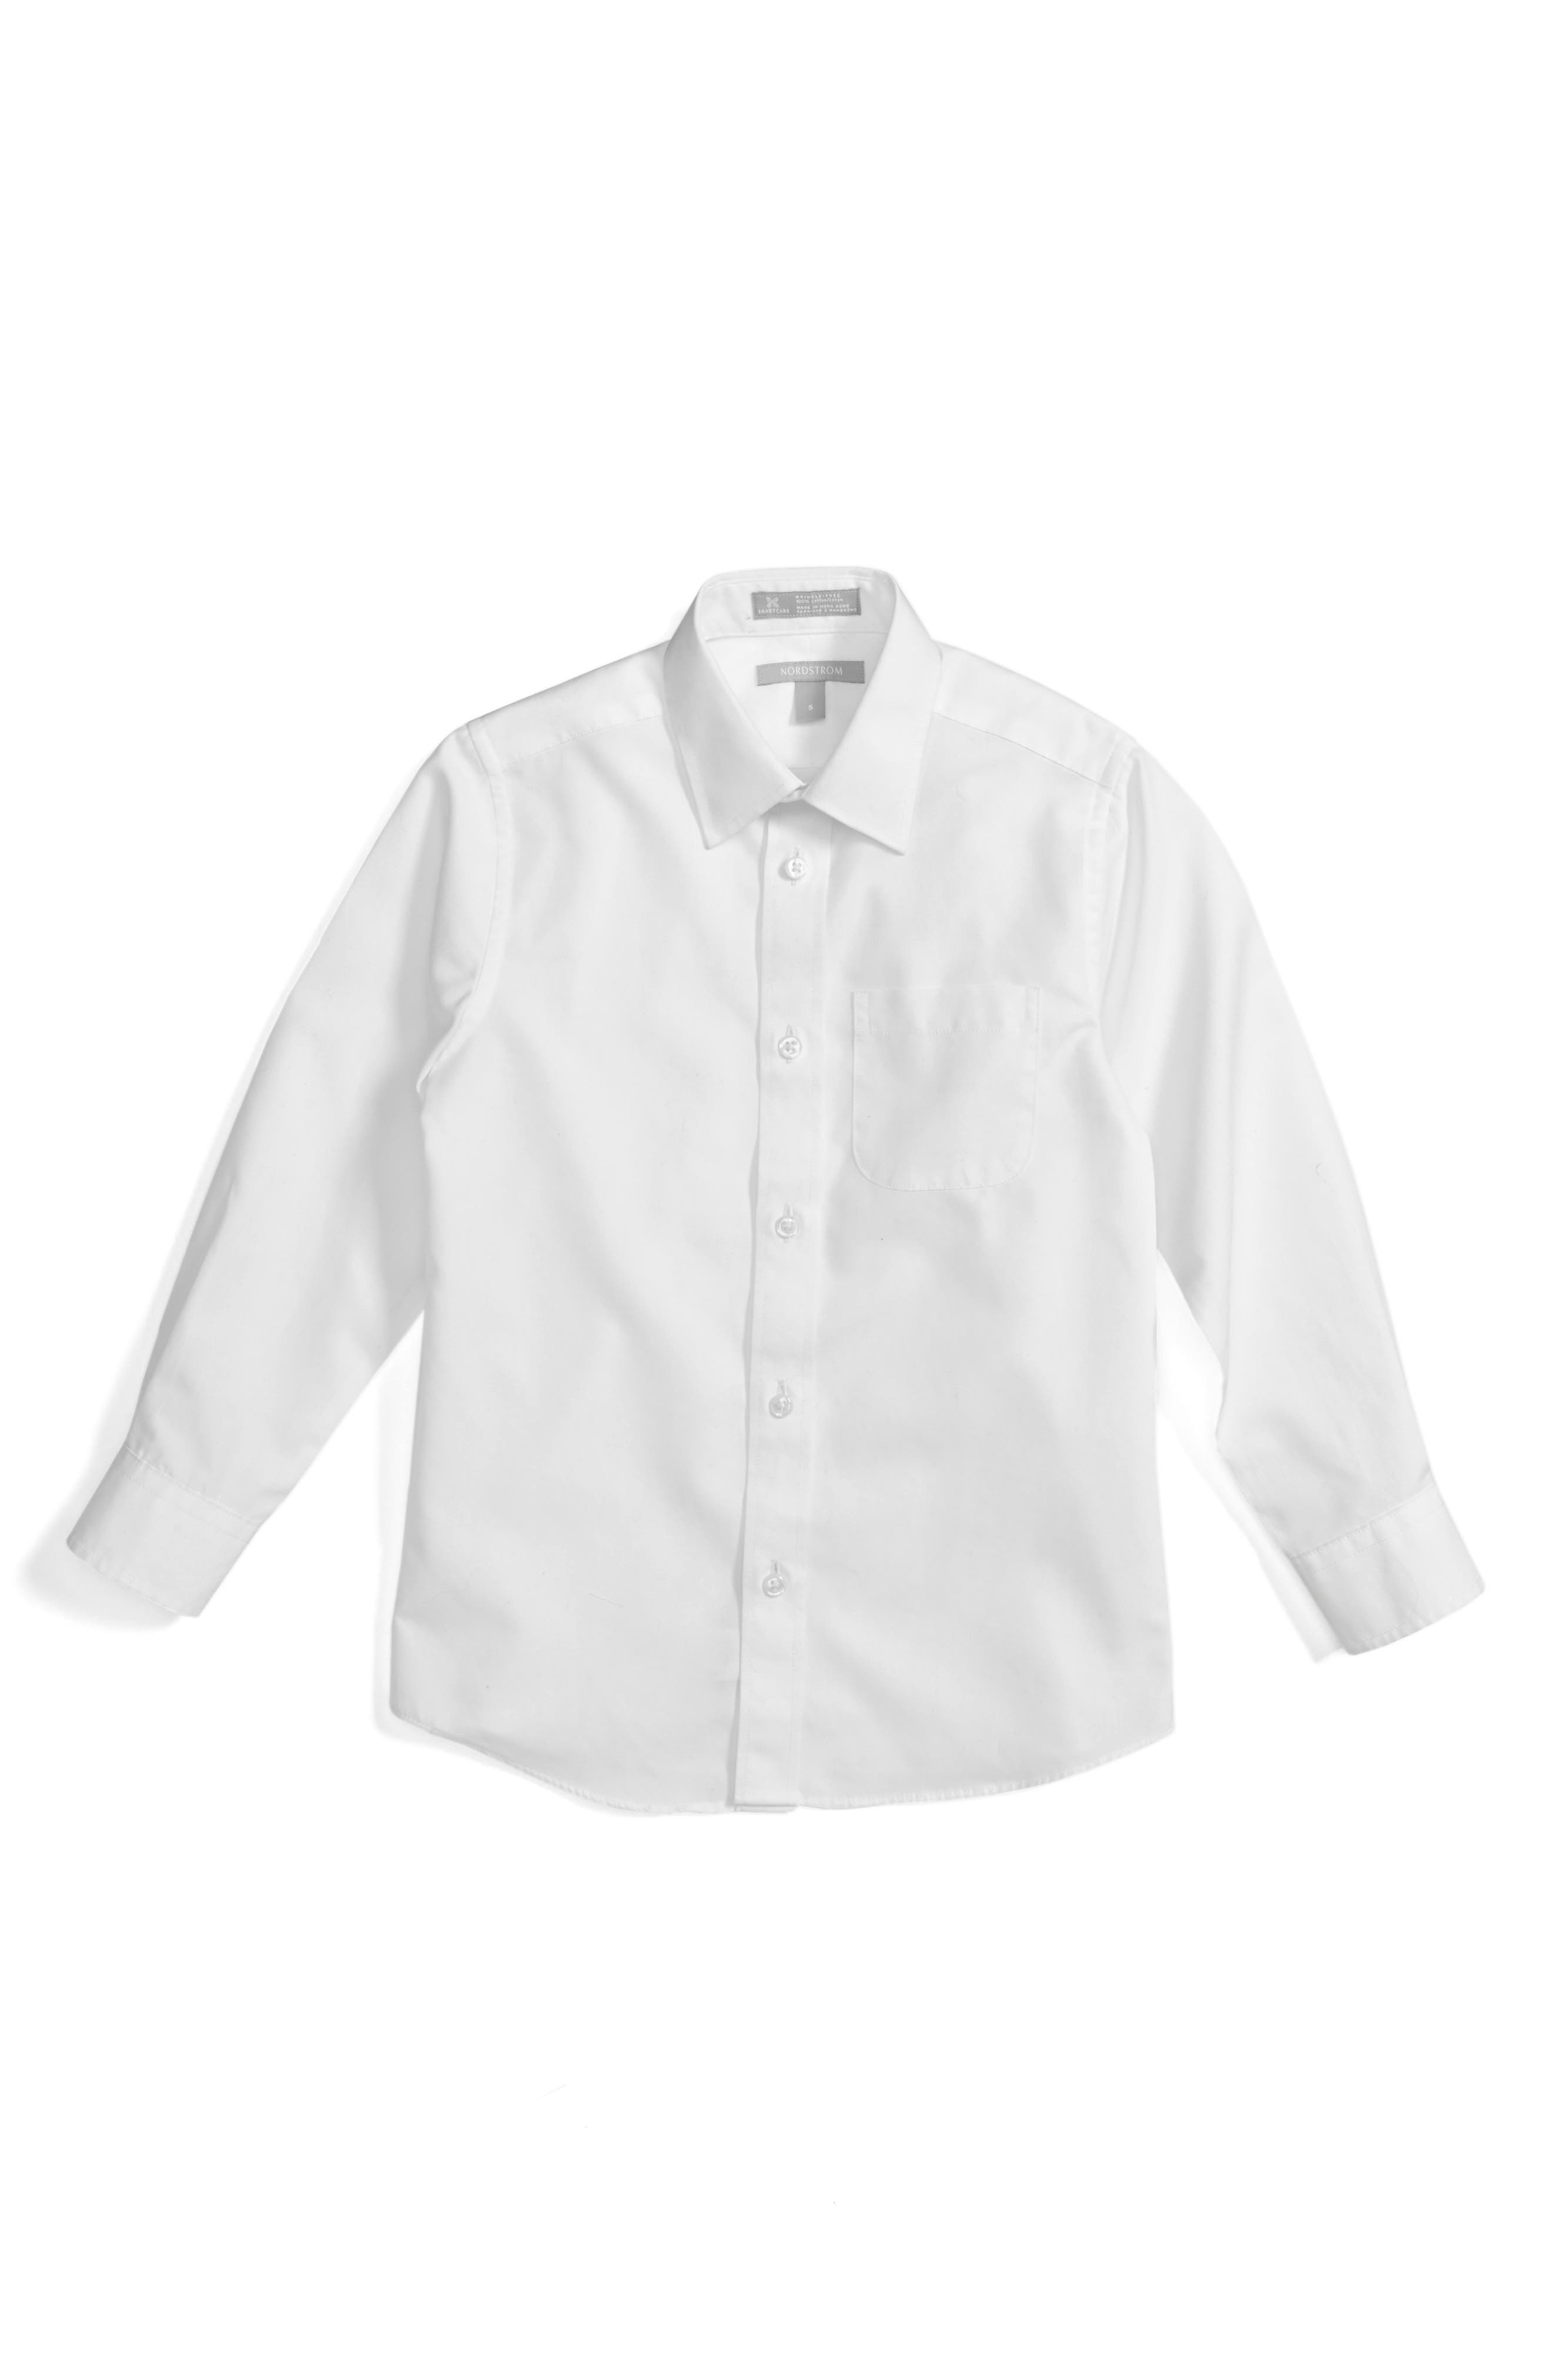 NORDSTROM, Smartcare<sup>™</sup> Dress Shirt, Alternate thumbnail 2, color, WHITE